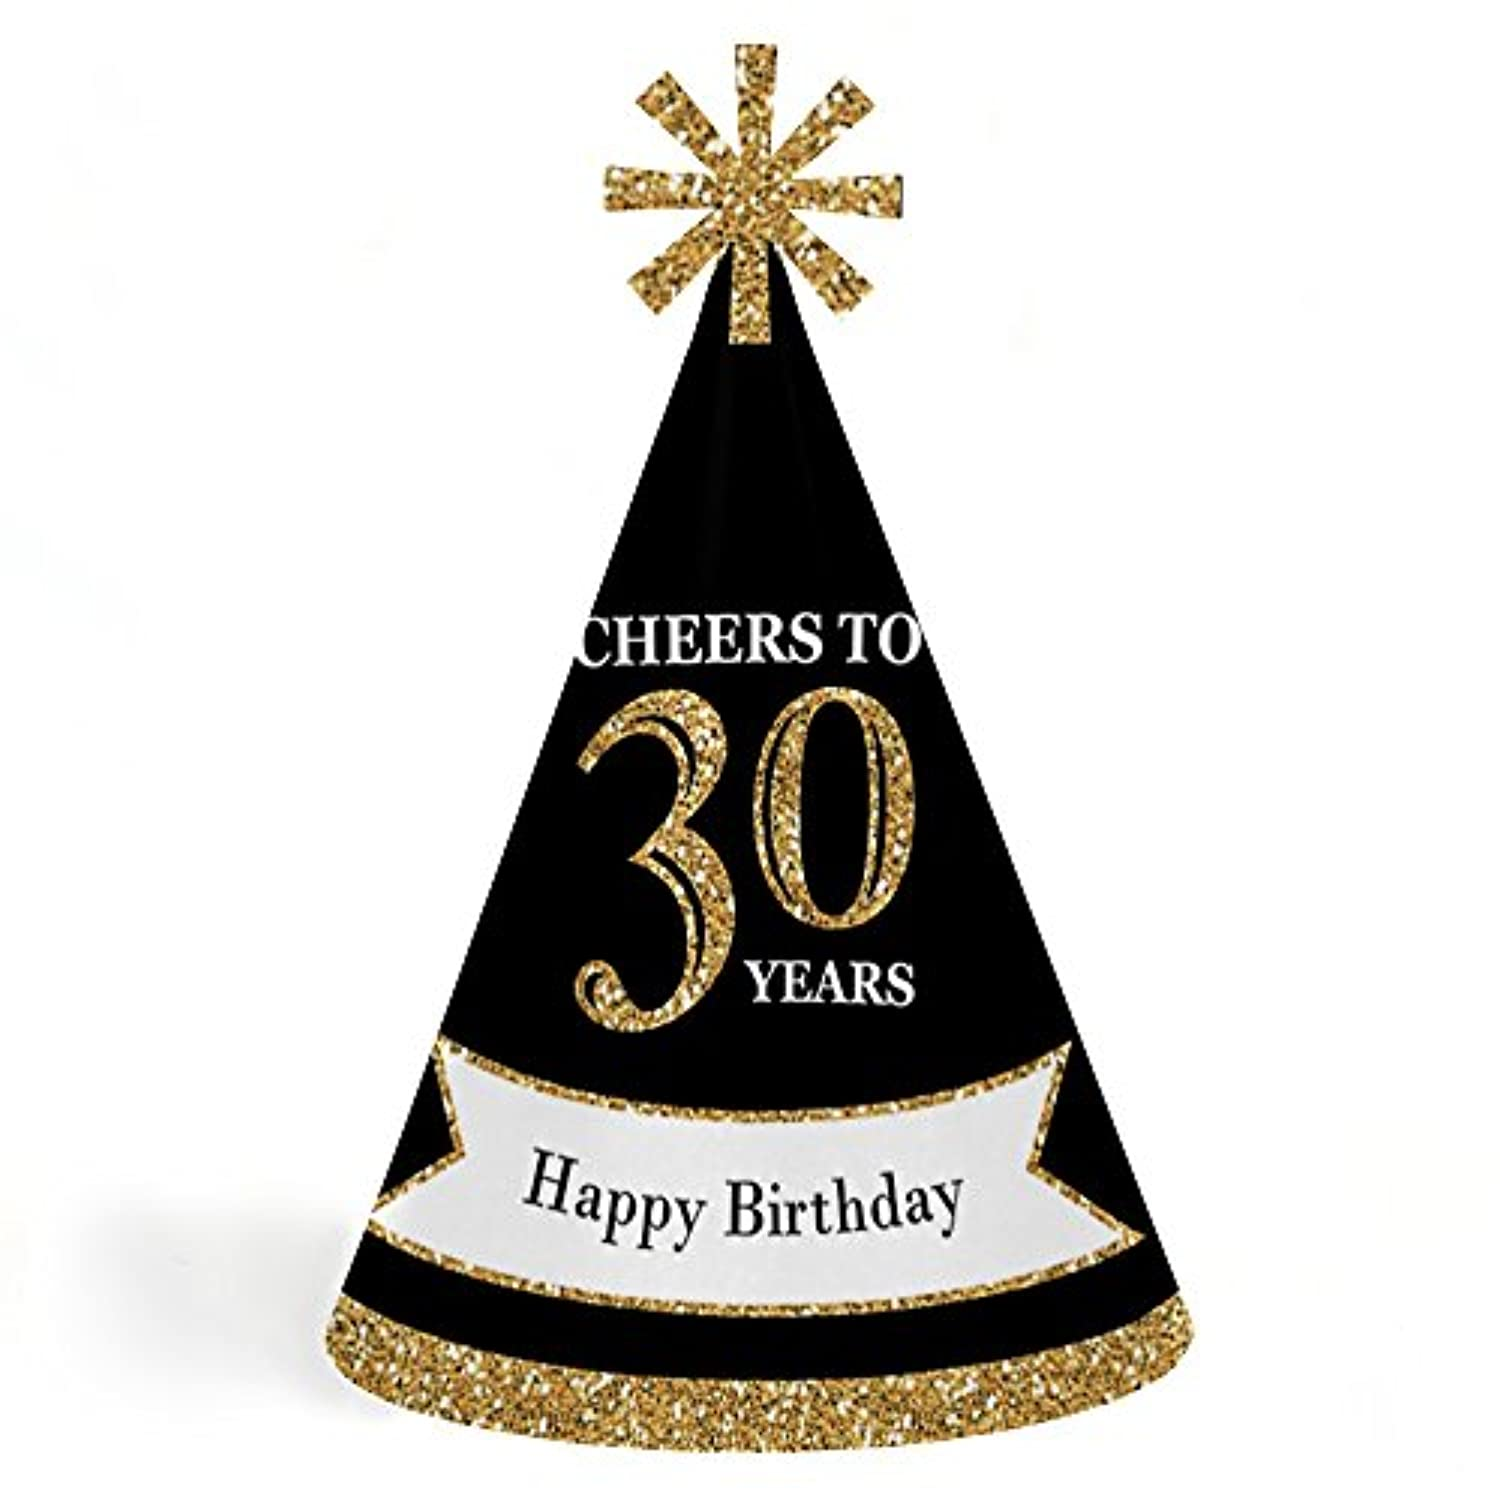 Adult 30th Birthday - Gold - Cone Birthday Party Hats - Set of 8 (Adult Size)